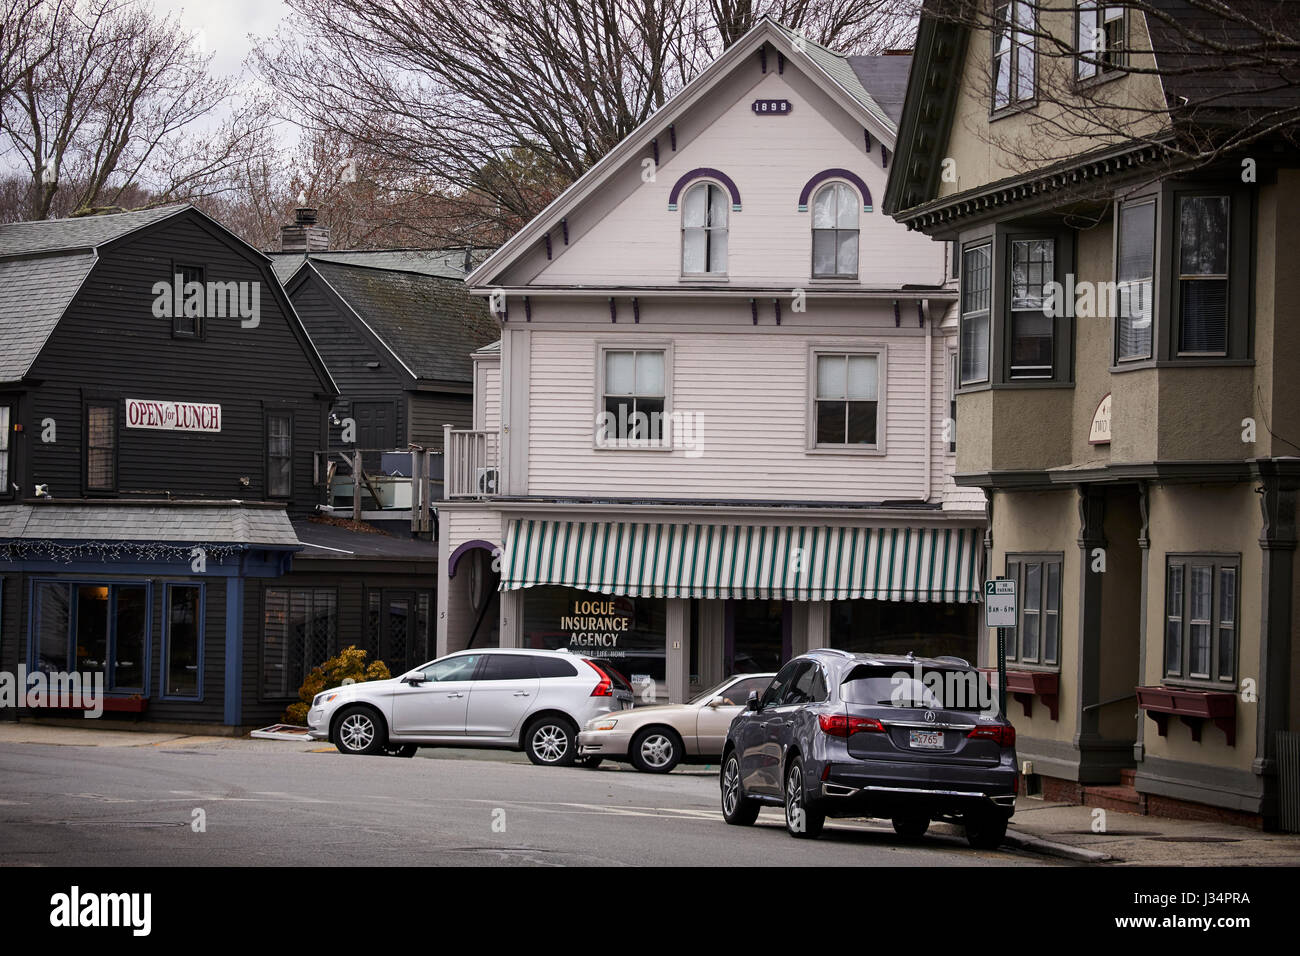 Union Street shops near the  harbor  Manchester by the Sea, Boston, Massachusetts, United States, USA, Stock Photo